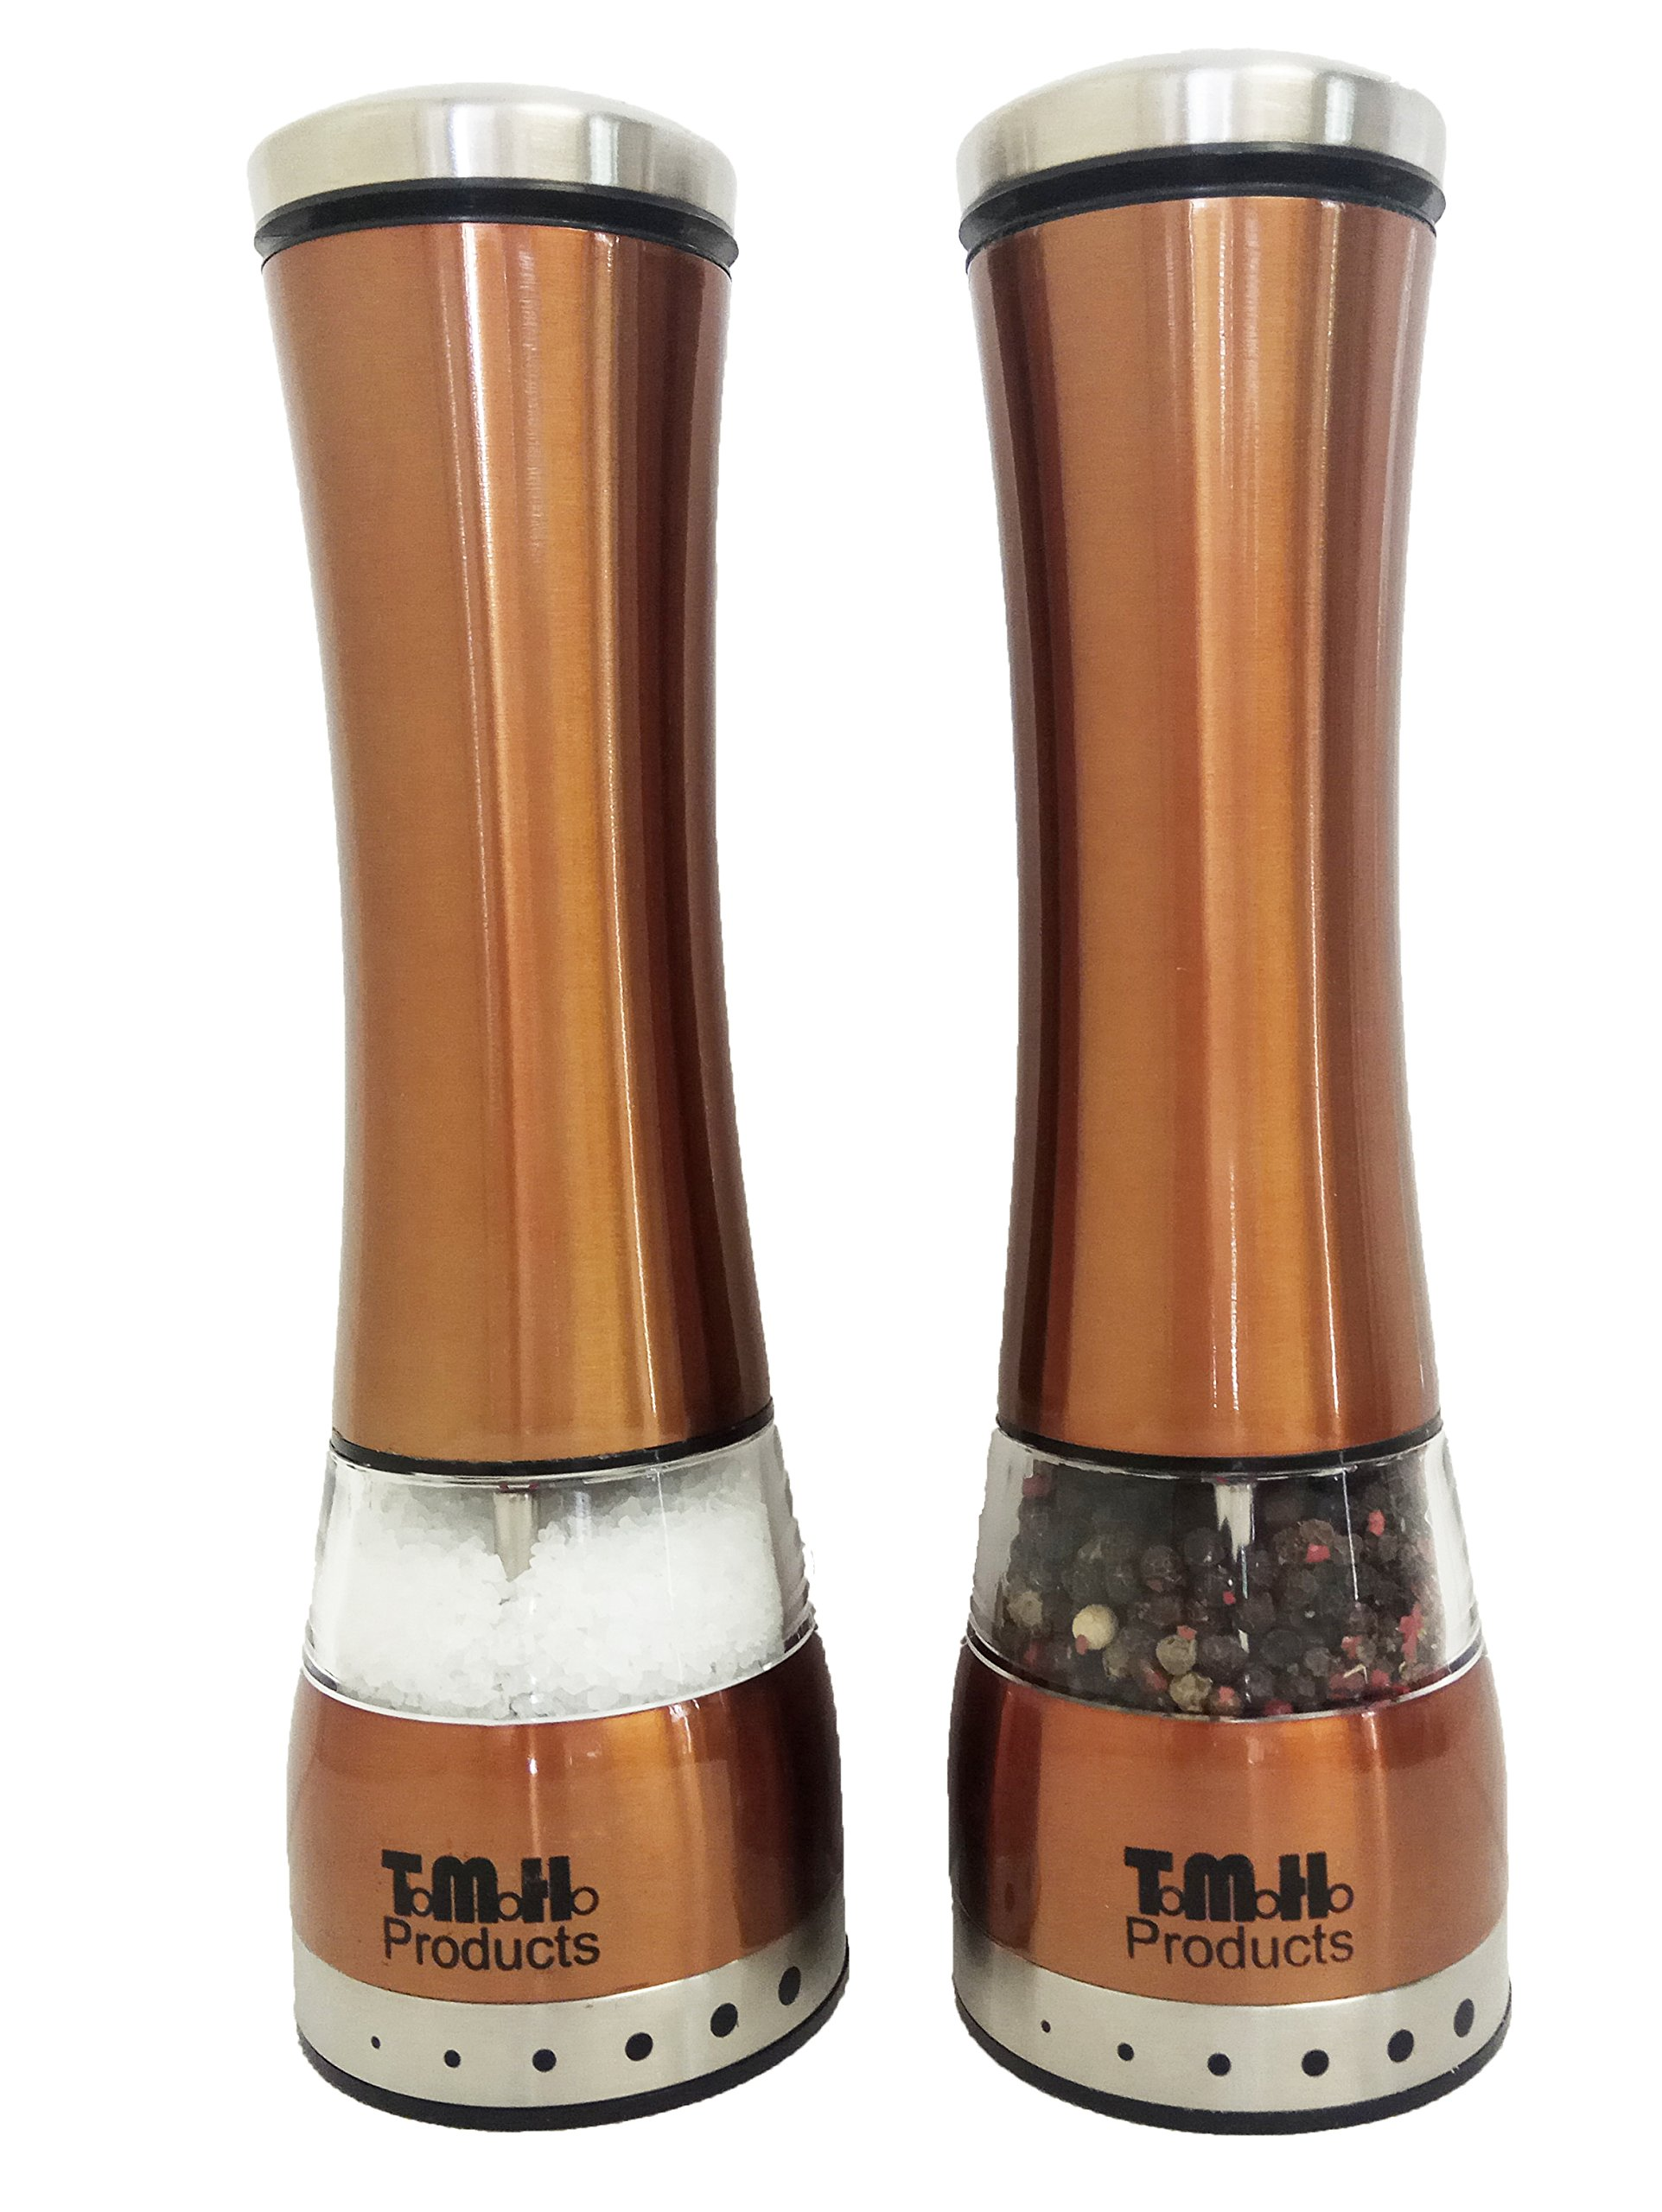 Electric Salt & Pepper Grinder Set by T.M.H. Products | Adjustable Grinder Mills, Simple to Use with Strong & Durable Mechanism | Polished Stainless-Steel | Brushed Copper Color and Built-In LED Light